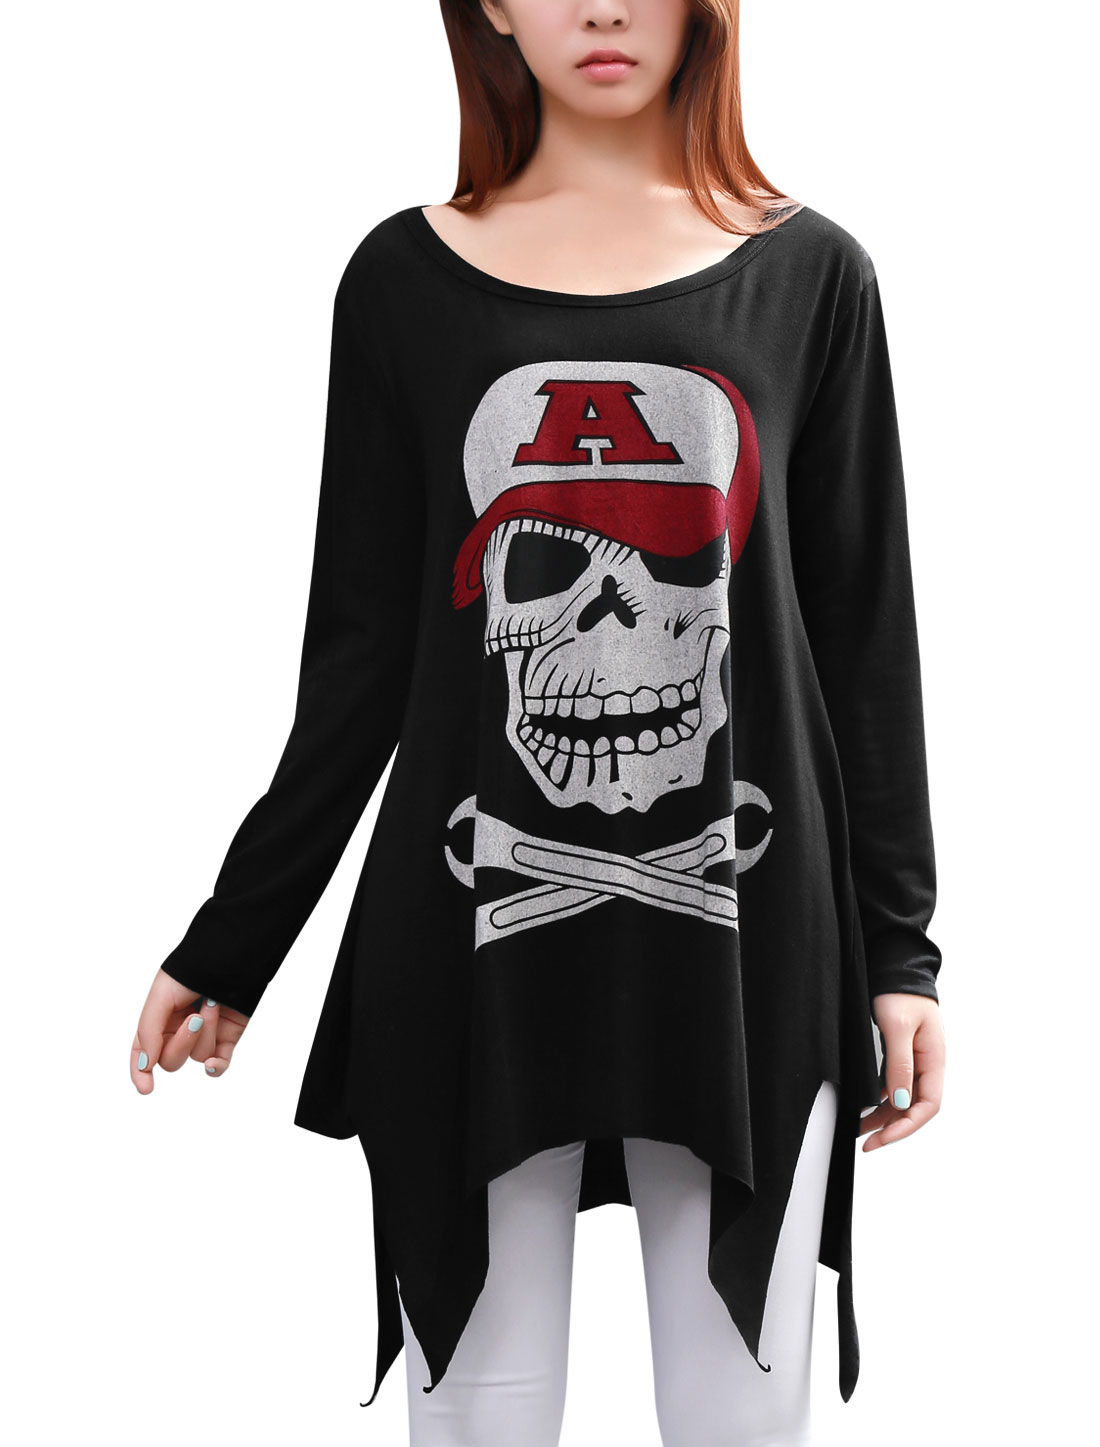 Lady Chic Skull Prints Irregular Hem Design Black Tunic Tops M